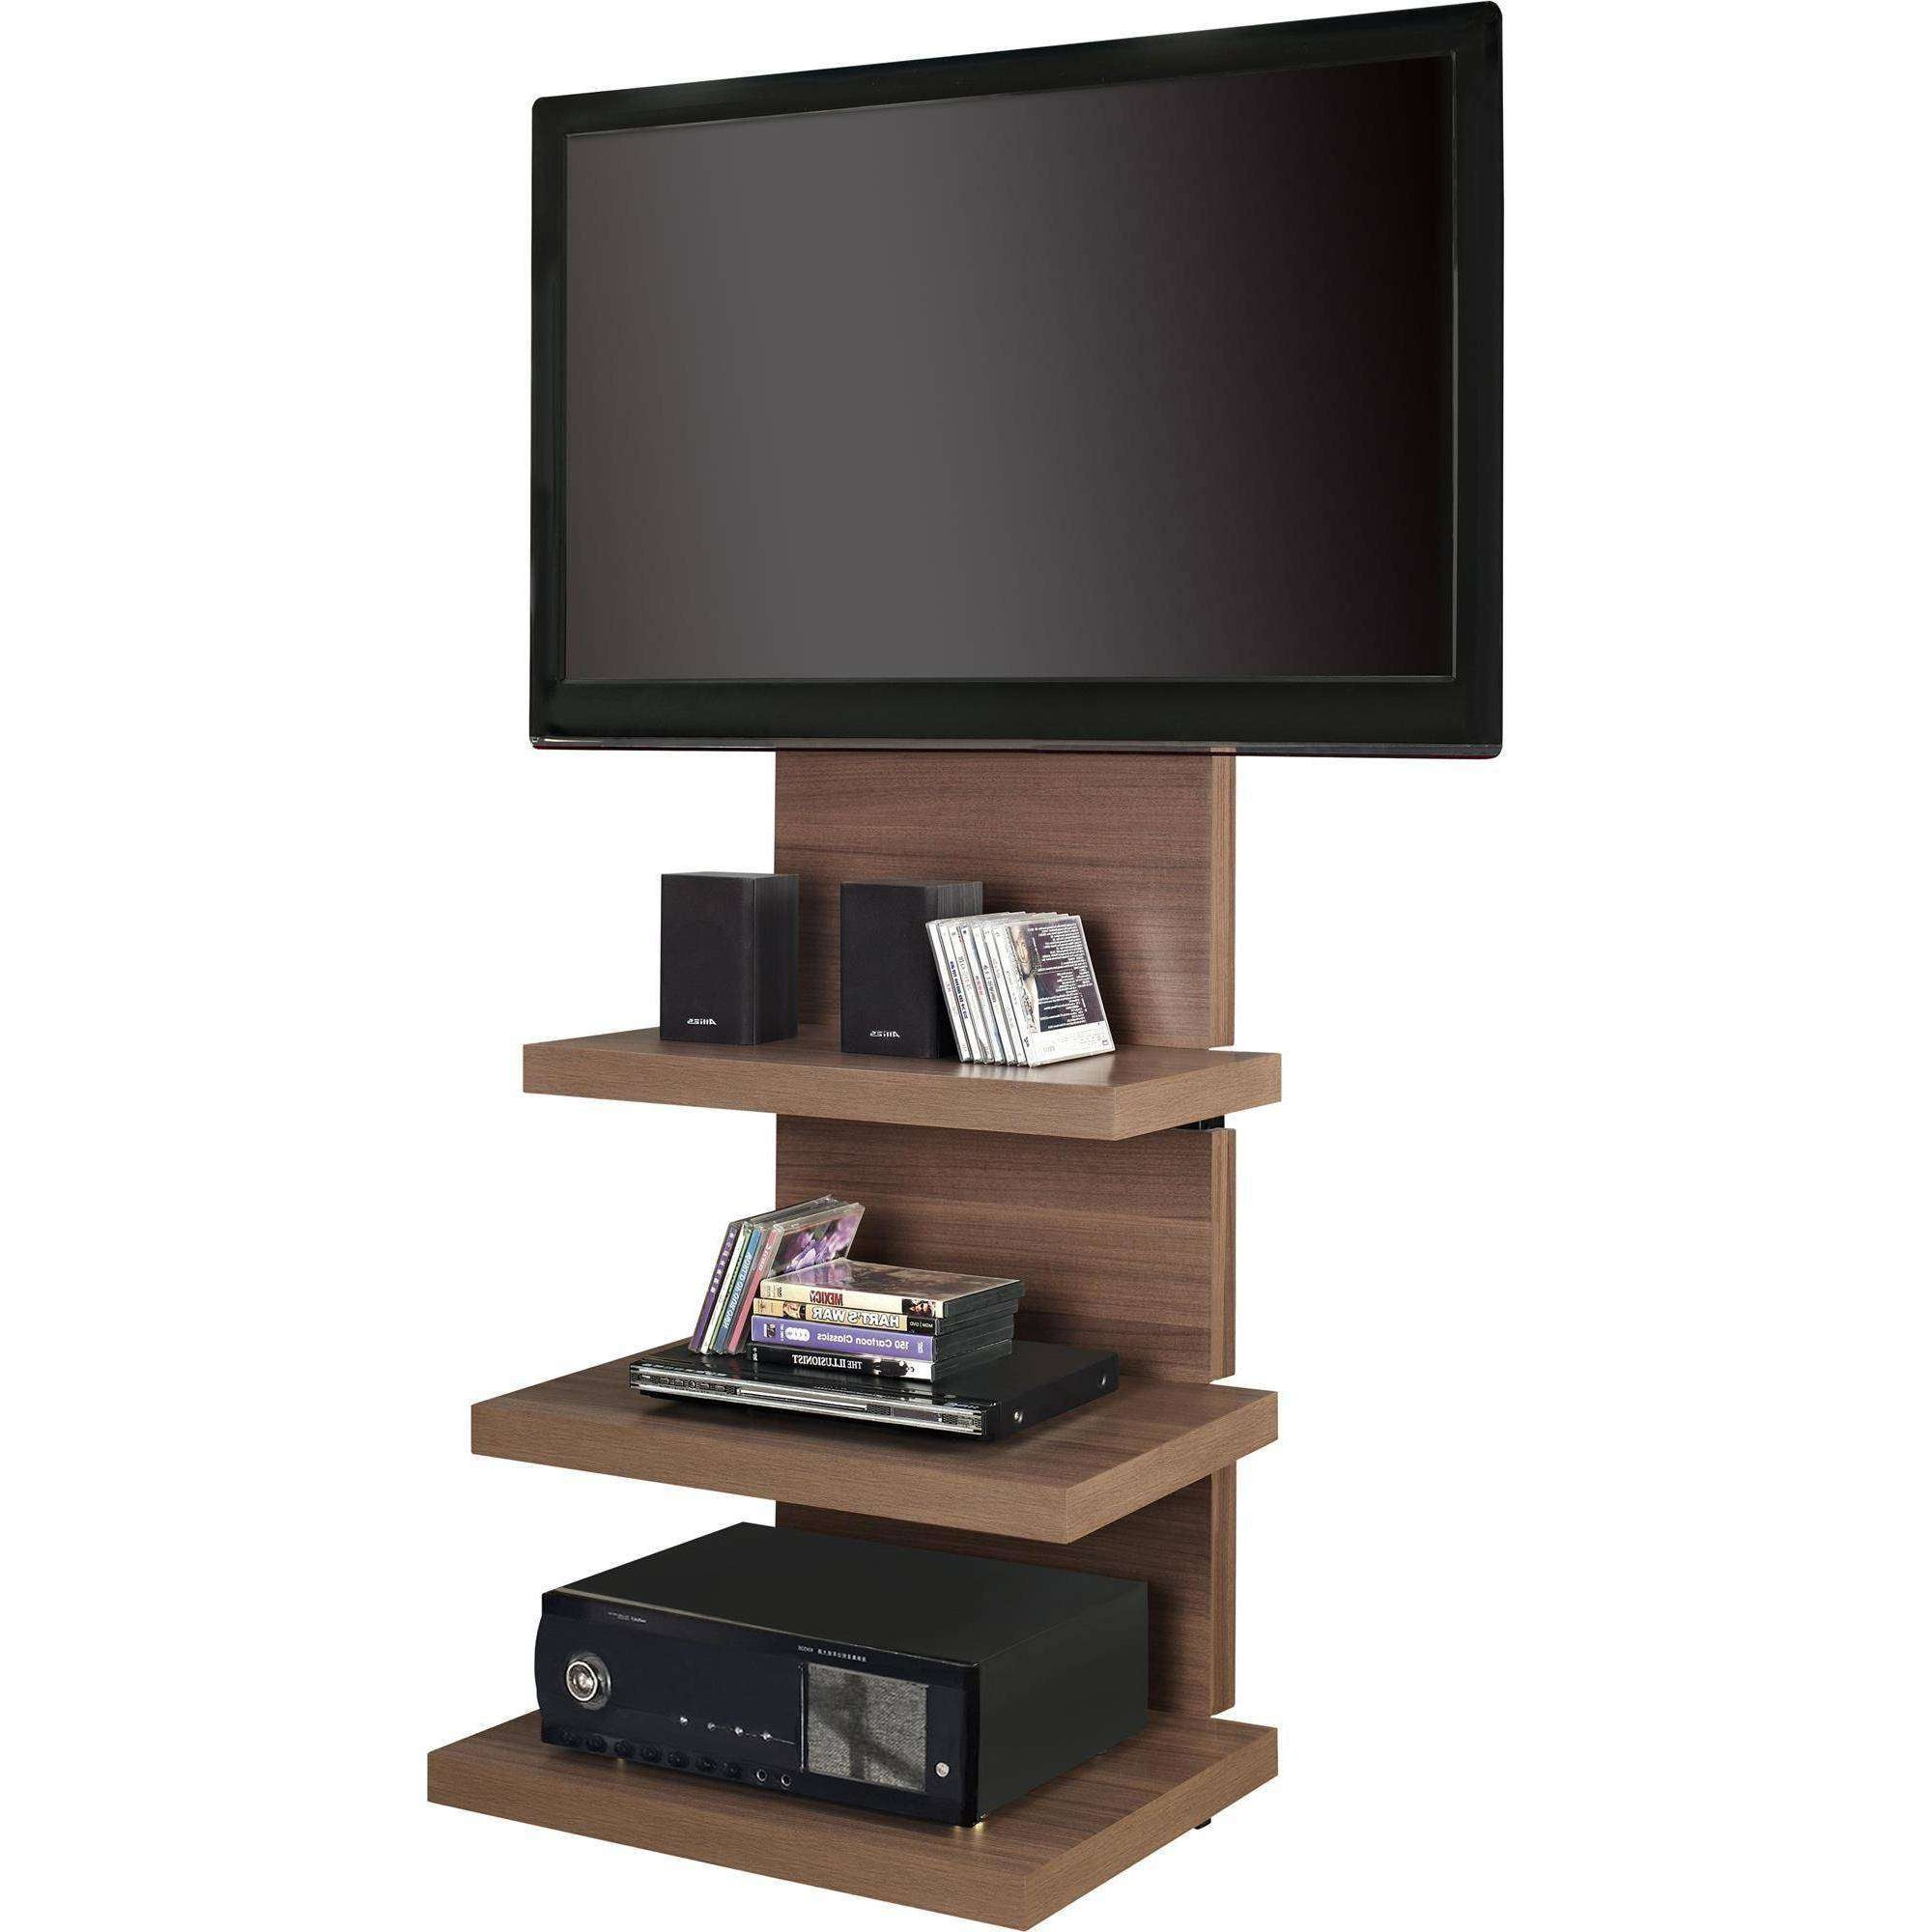 Best Tv Stand To Go Over Cable Box Tags : Tv Stands Over Cable Box Throughout Tv Stands Over Cable Box (View 3 of 15)